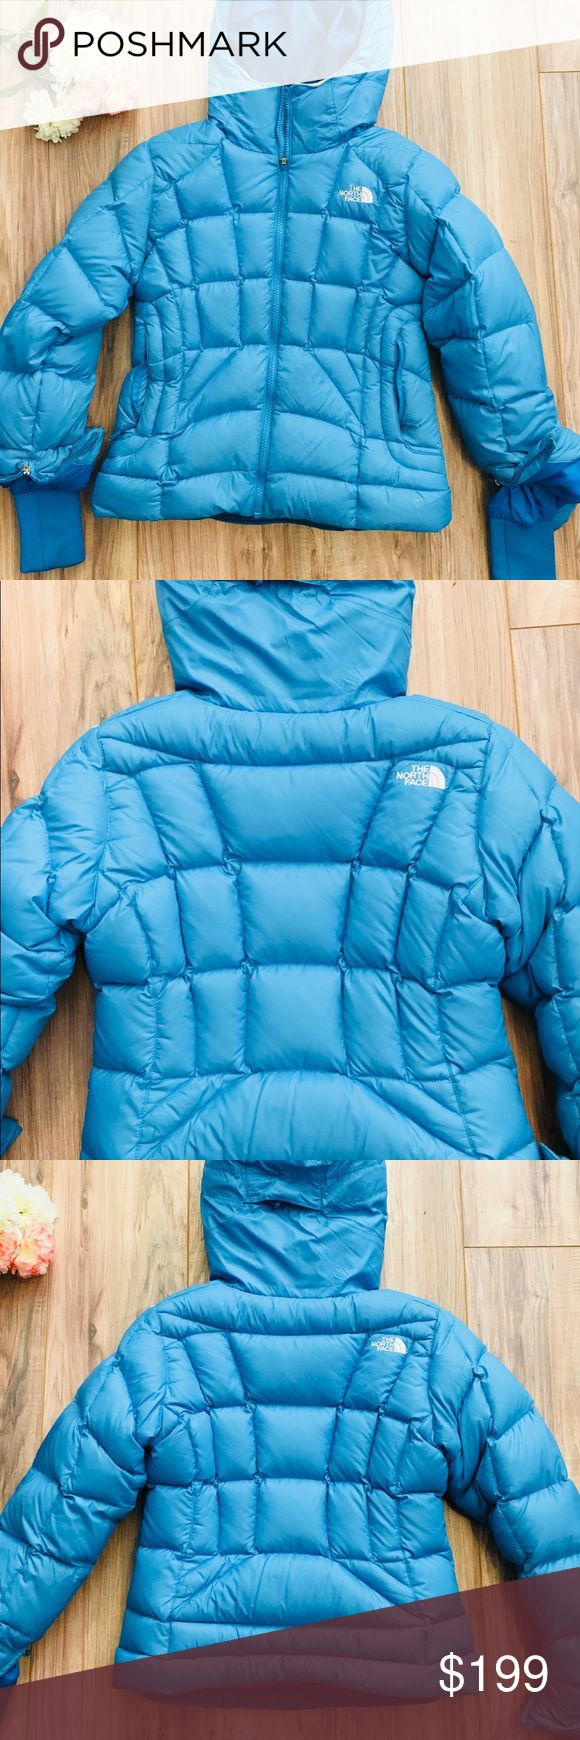 The North Face Womens Goose Down 600 Puffer Jacket Used but in Perfect Condition hence why I've added it to my boutique list this is a very cute jacket that i probably wore about two times when I was outside of California. I'd like to find more upcoming items to fill my closet space. I don't think I'll be needing this bad boy.   Size is XS  light blue color  Goose down cuteness  And I'll let the pictures speak for themselves .. The North Face Jackets & Coats Puffers